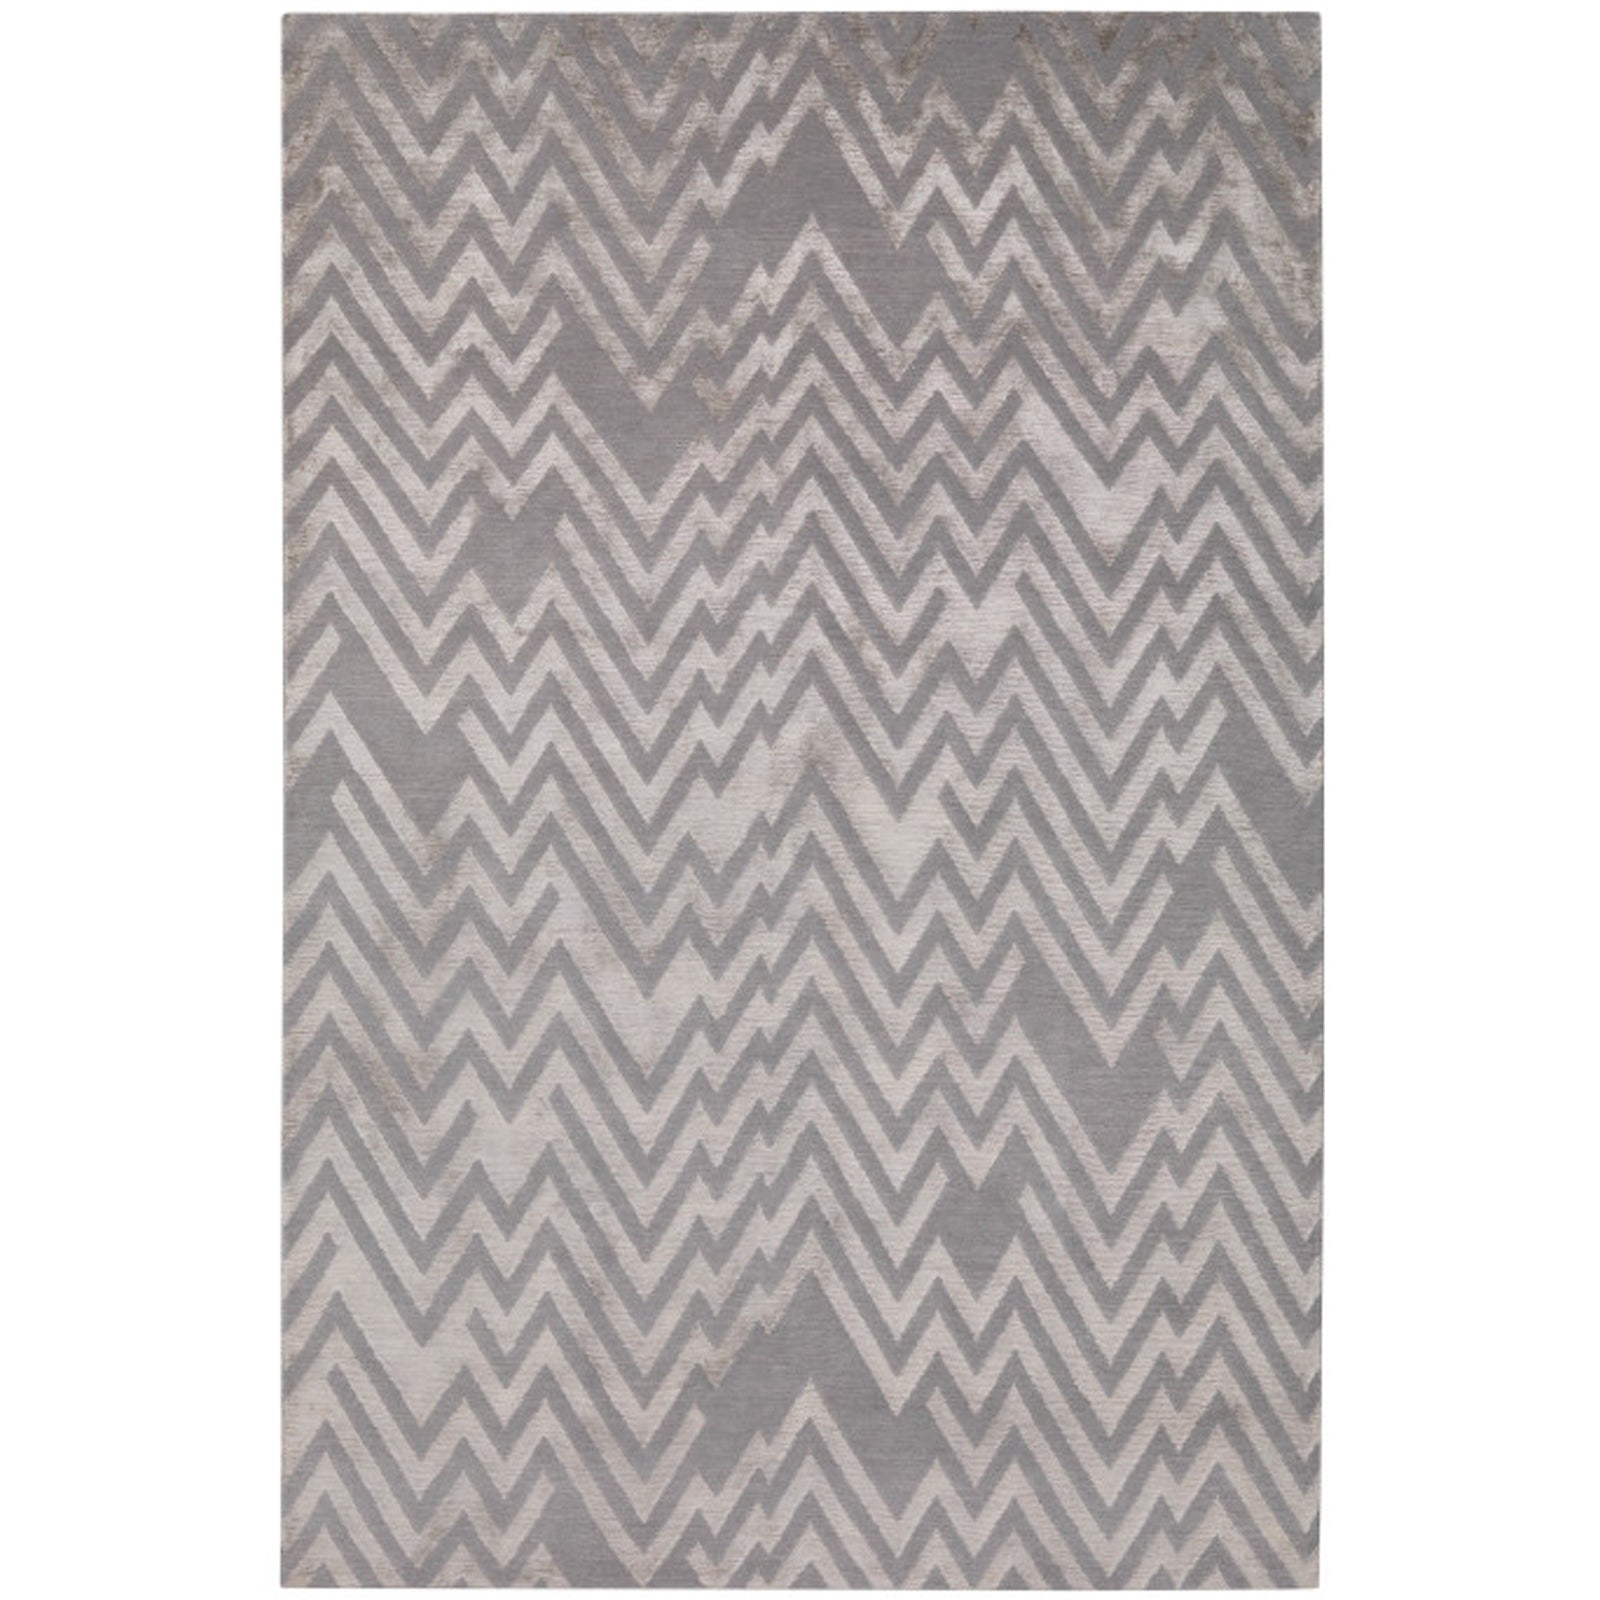 Peaks By Paul Smith - The Rug Company